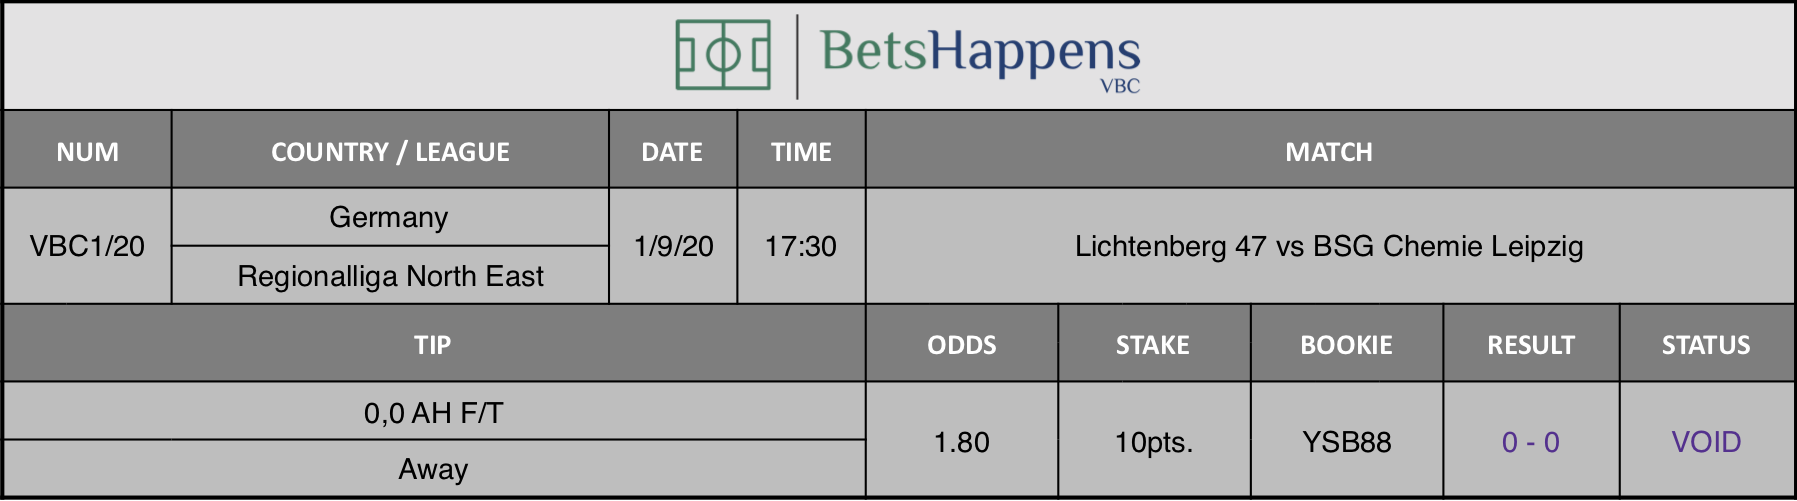 Results of our prediction for the Lichtenberg 47 vs BSG Chemie Leipzig match in which 0.0 AH F / T Away is advised.